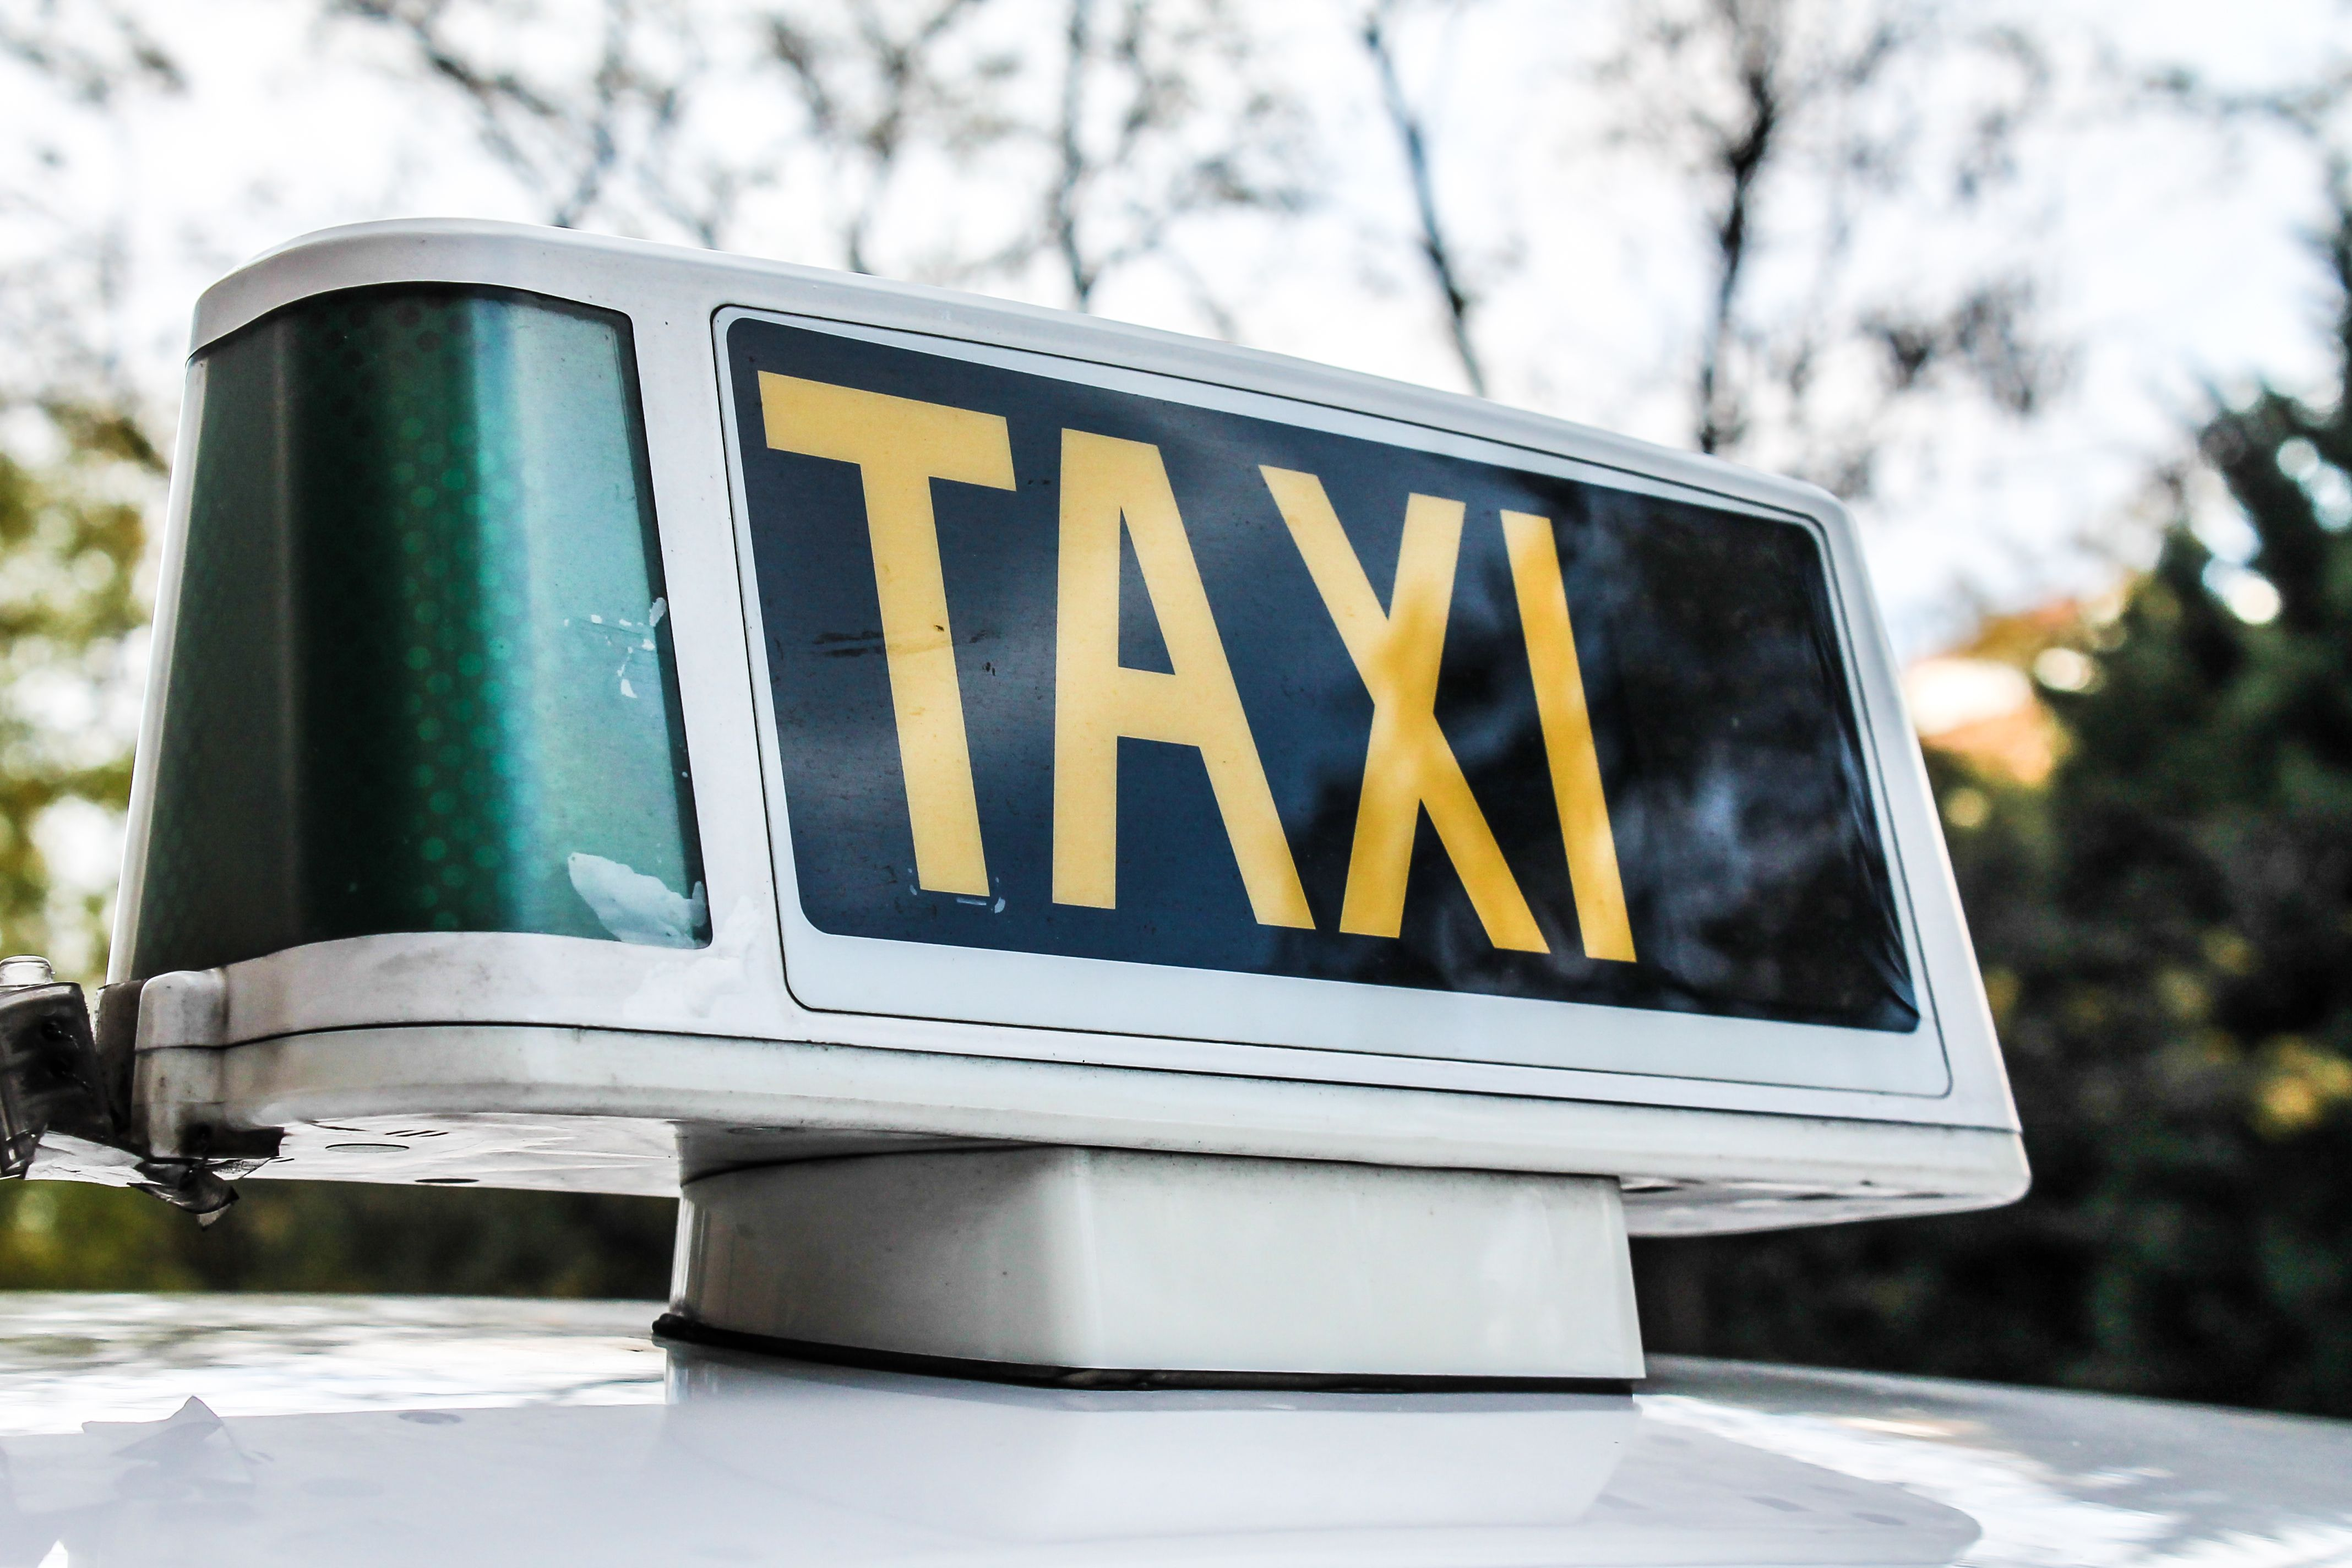 Picture 2 of Taxis in Madrid | Radio taxi Madrid Aeropuerto